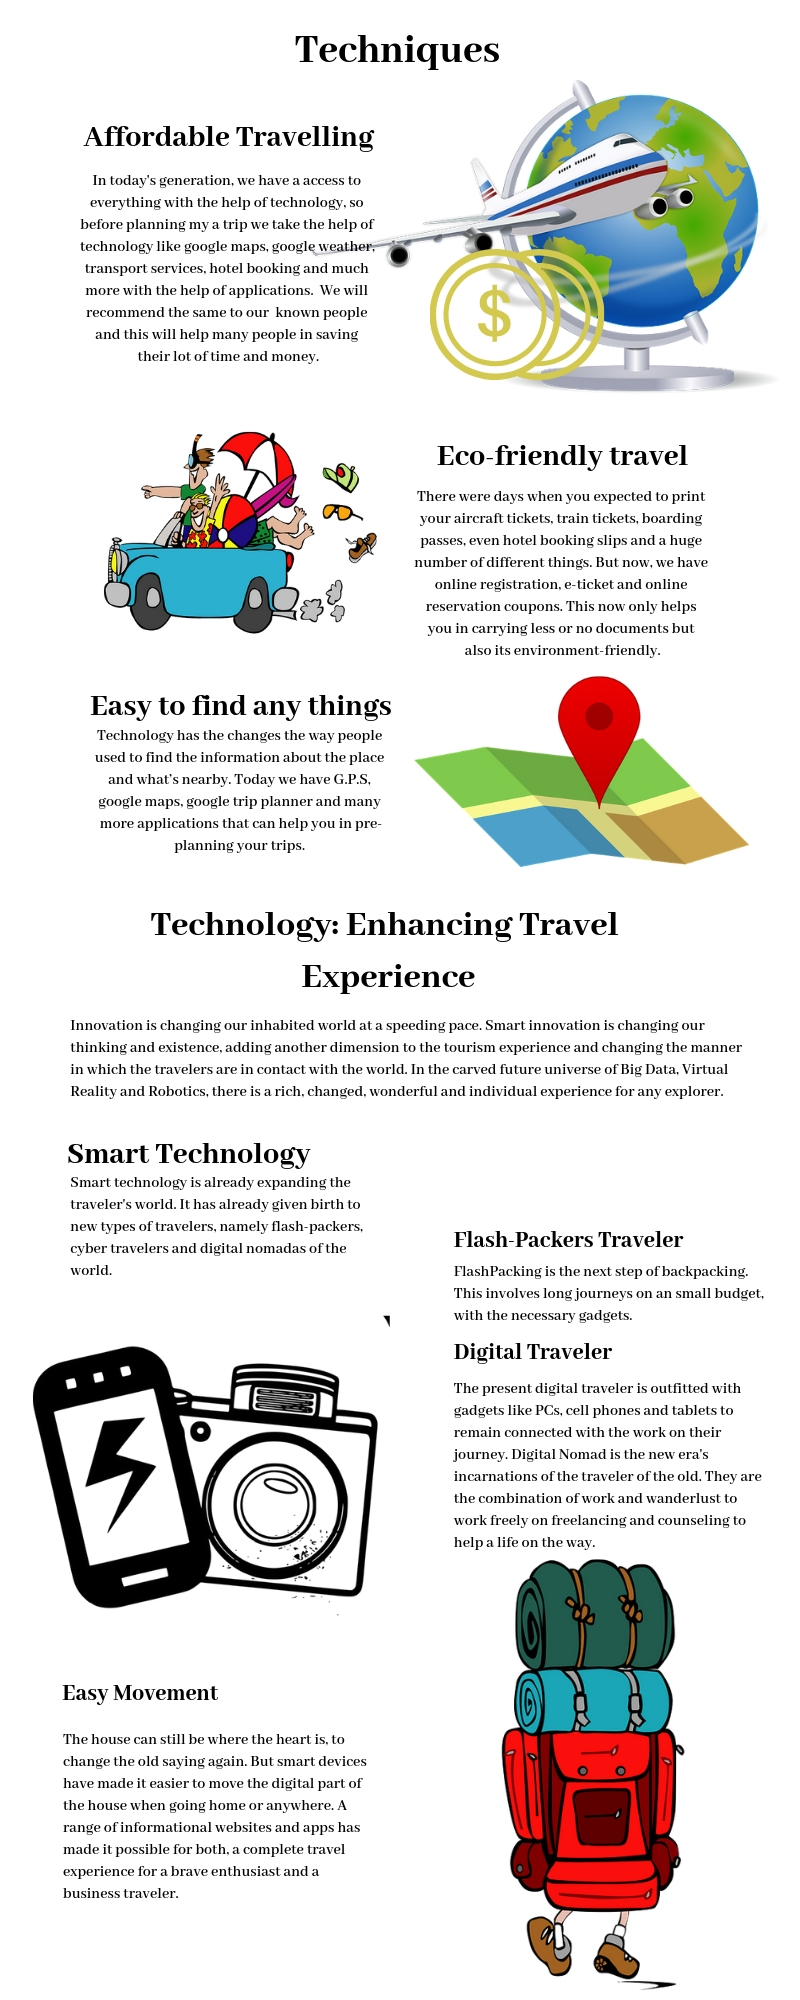 TYPES OF TRAVEL TECHNIQUES